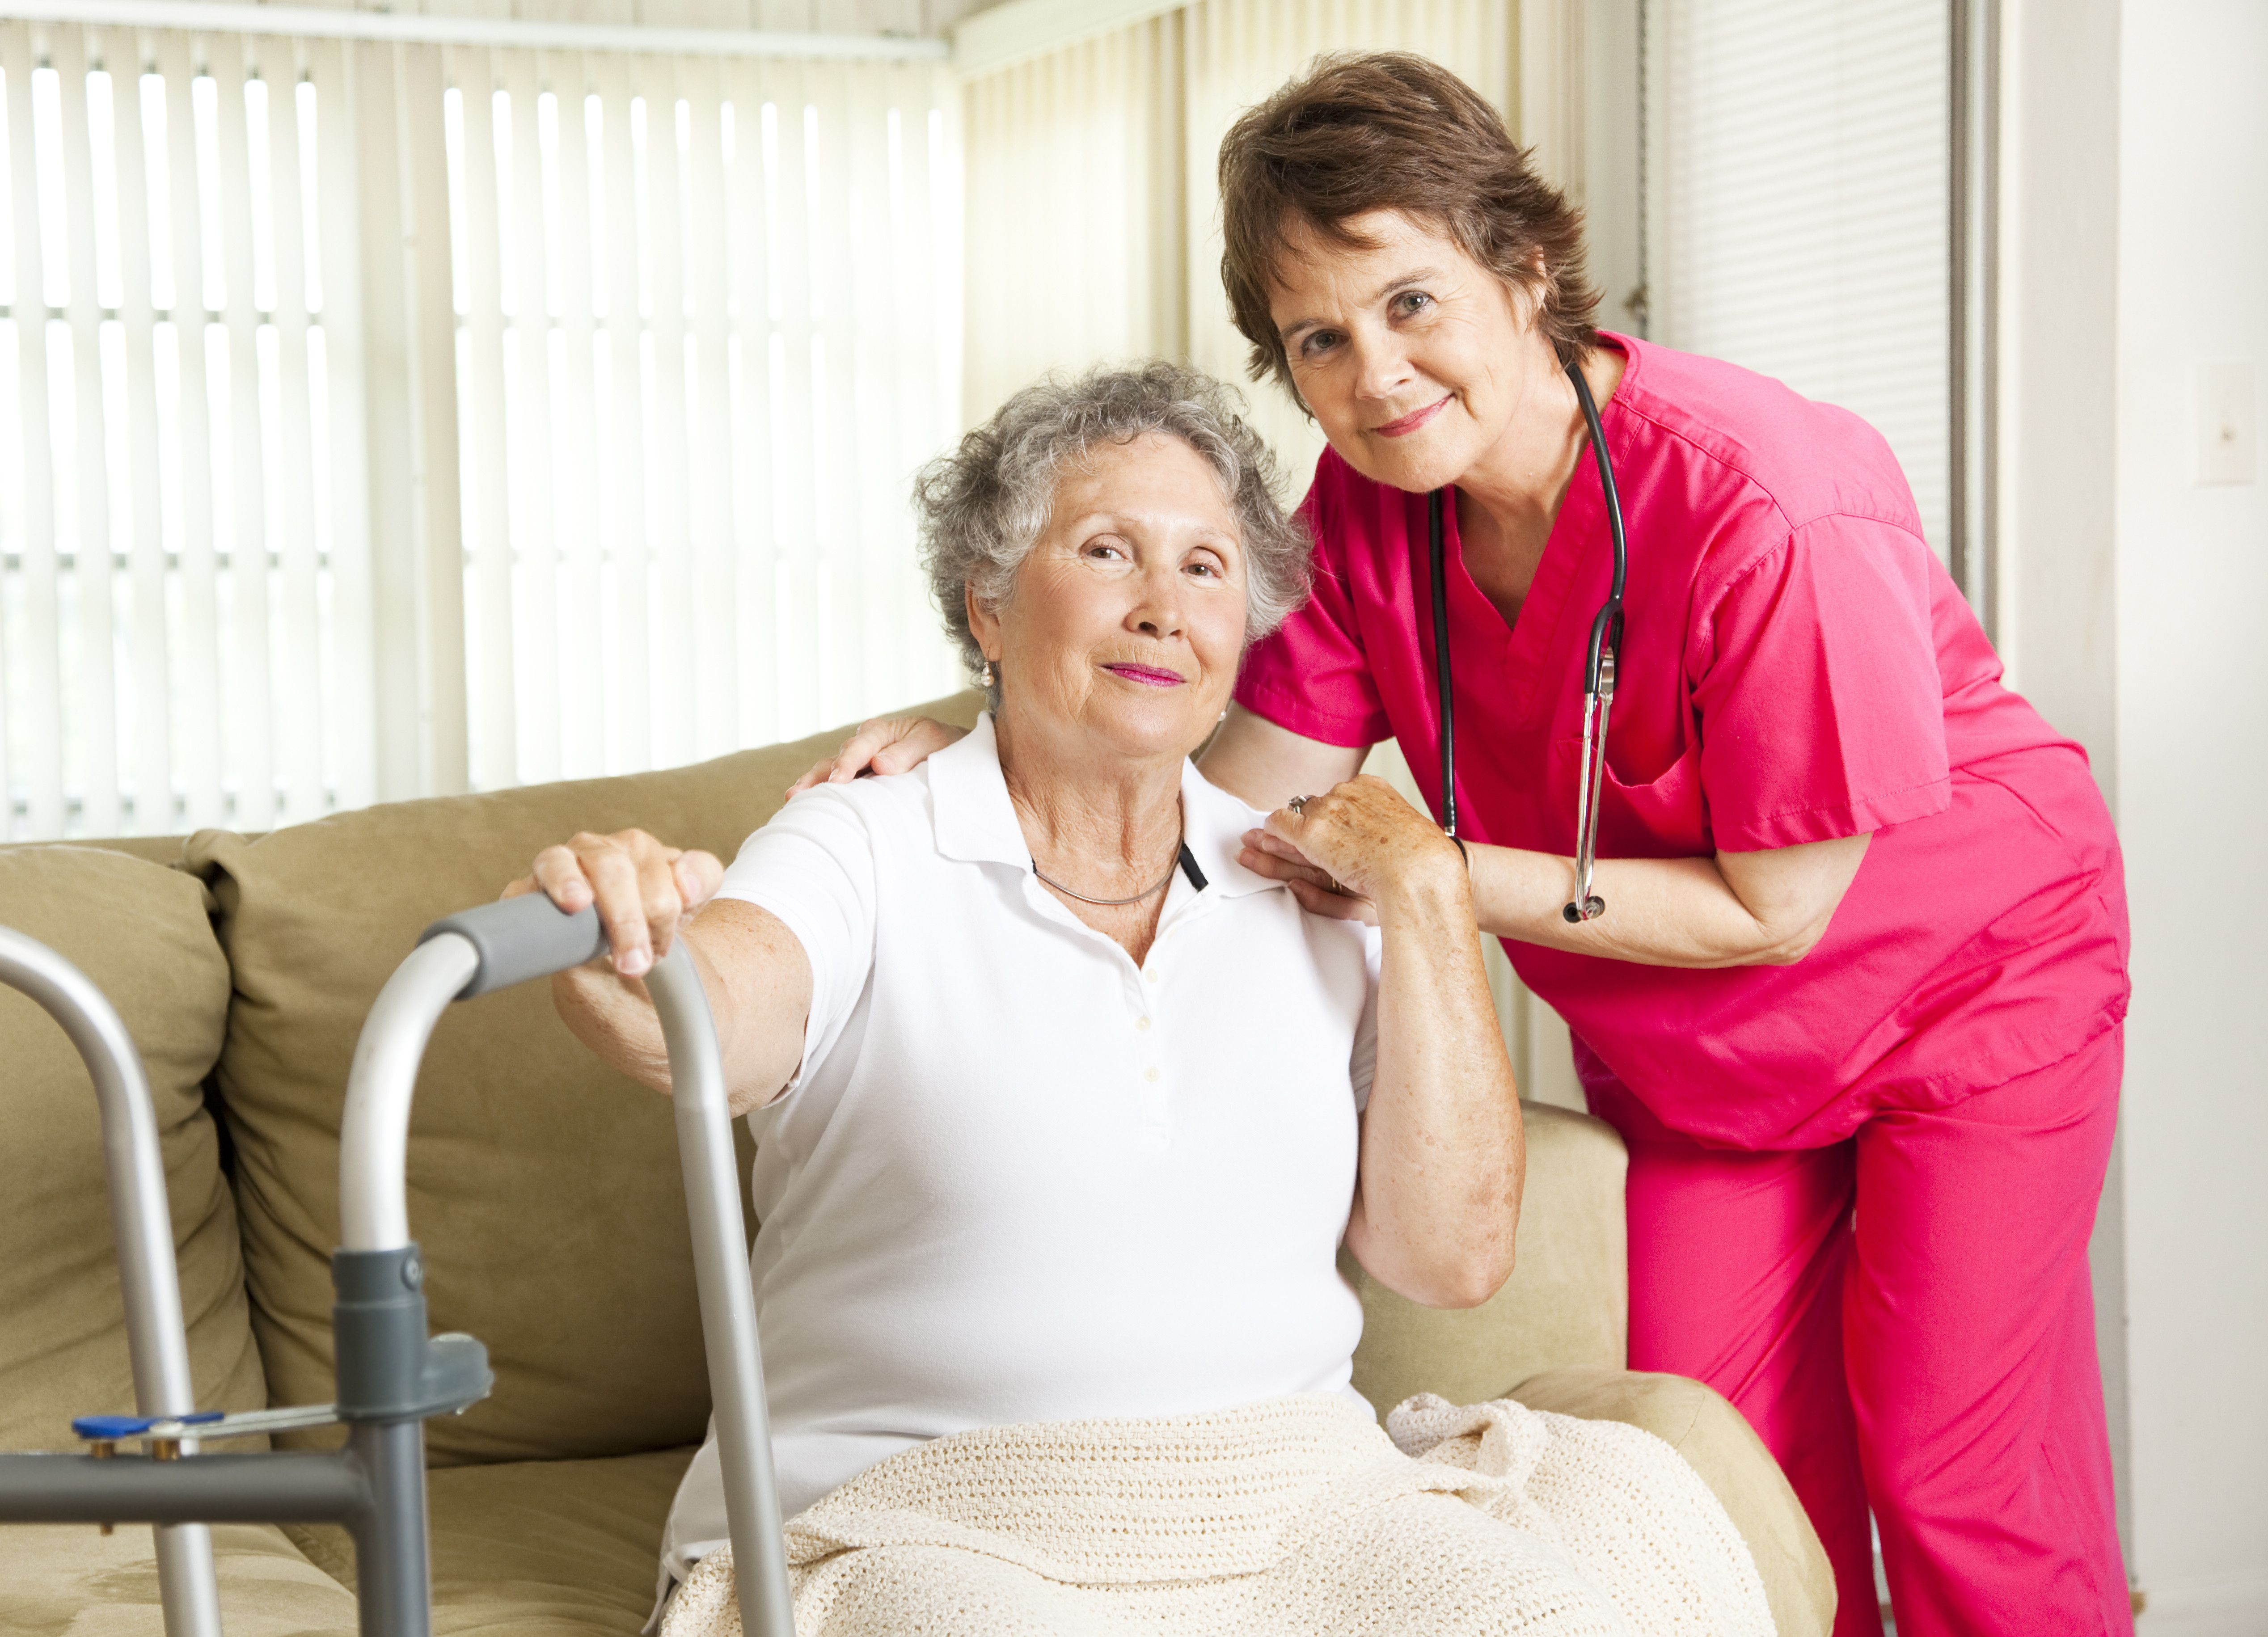 All senior care is expensive we have to accept that the